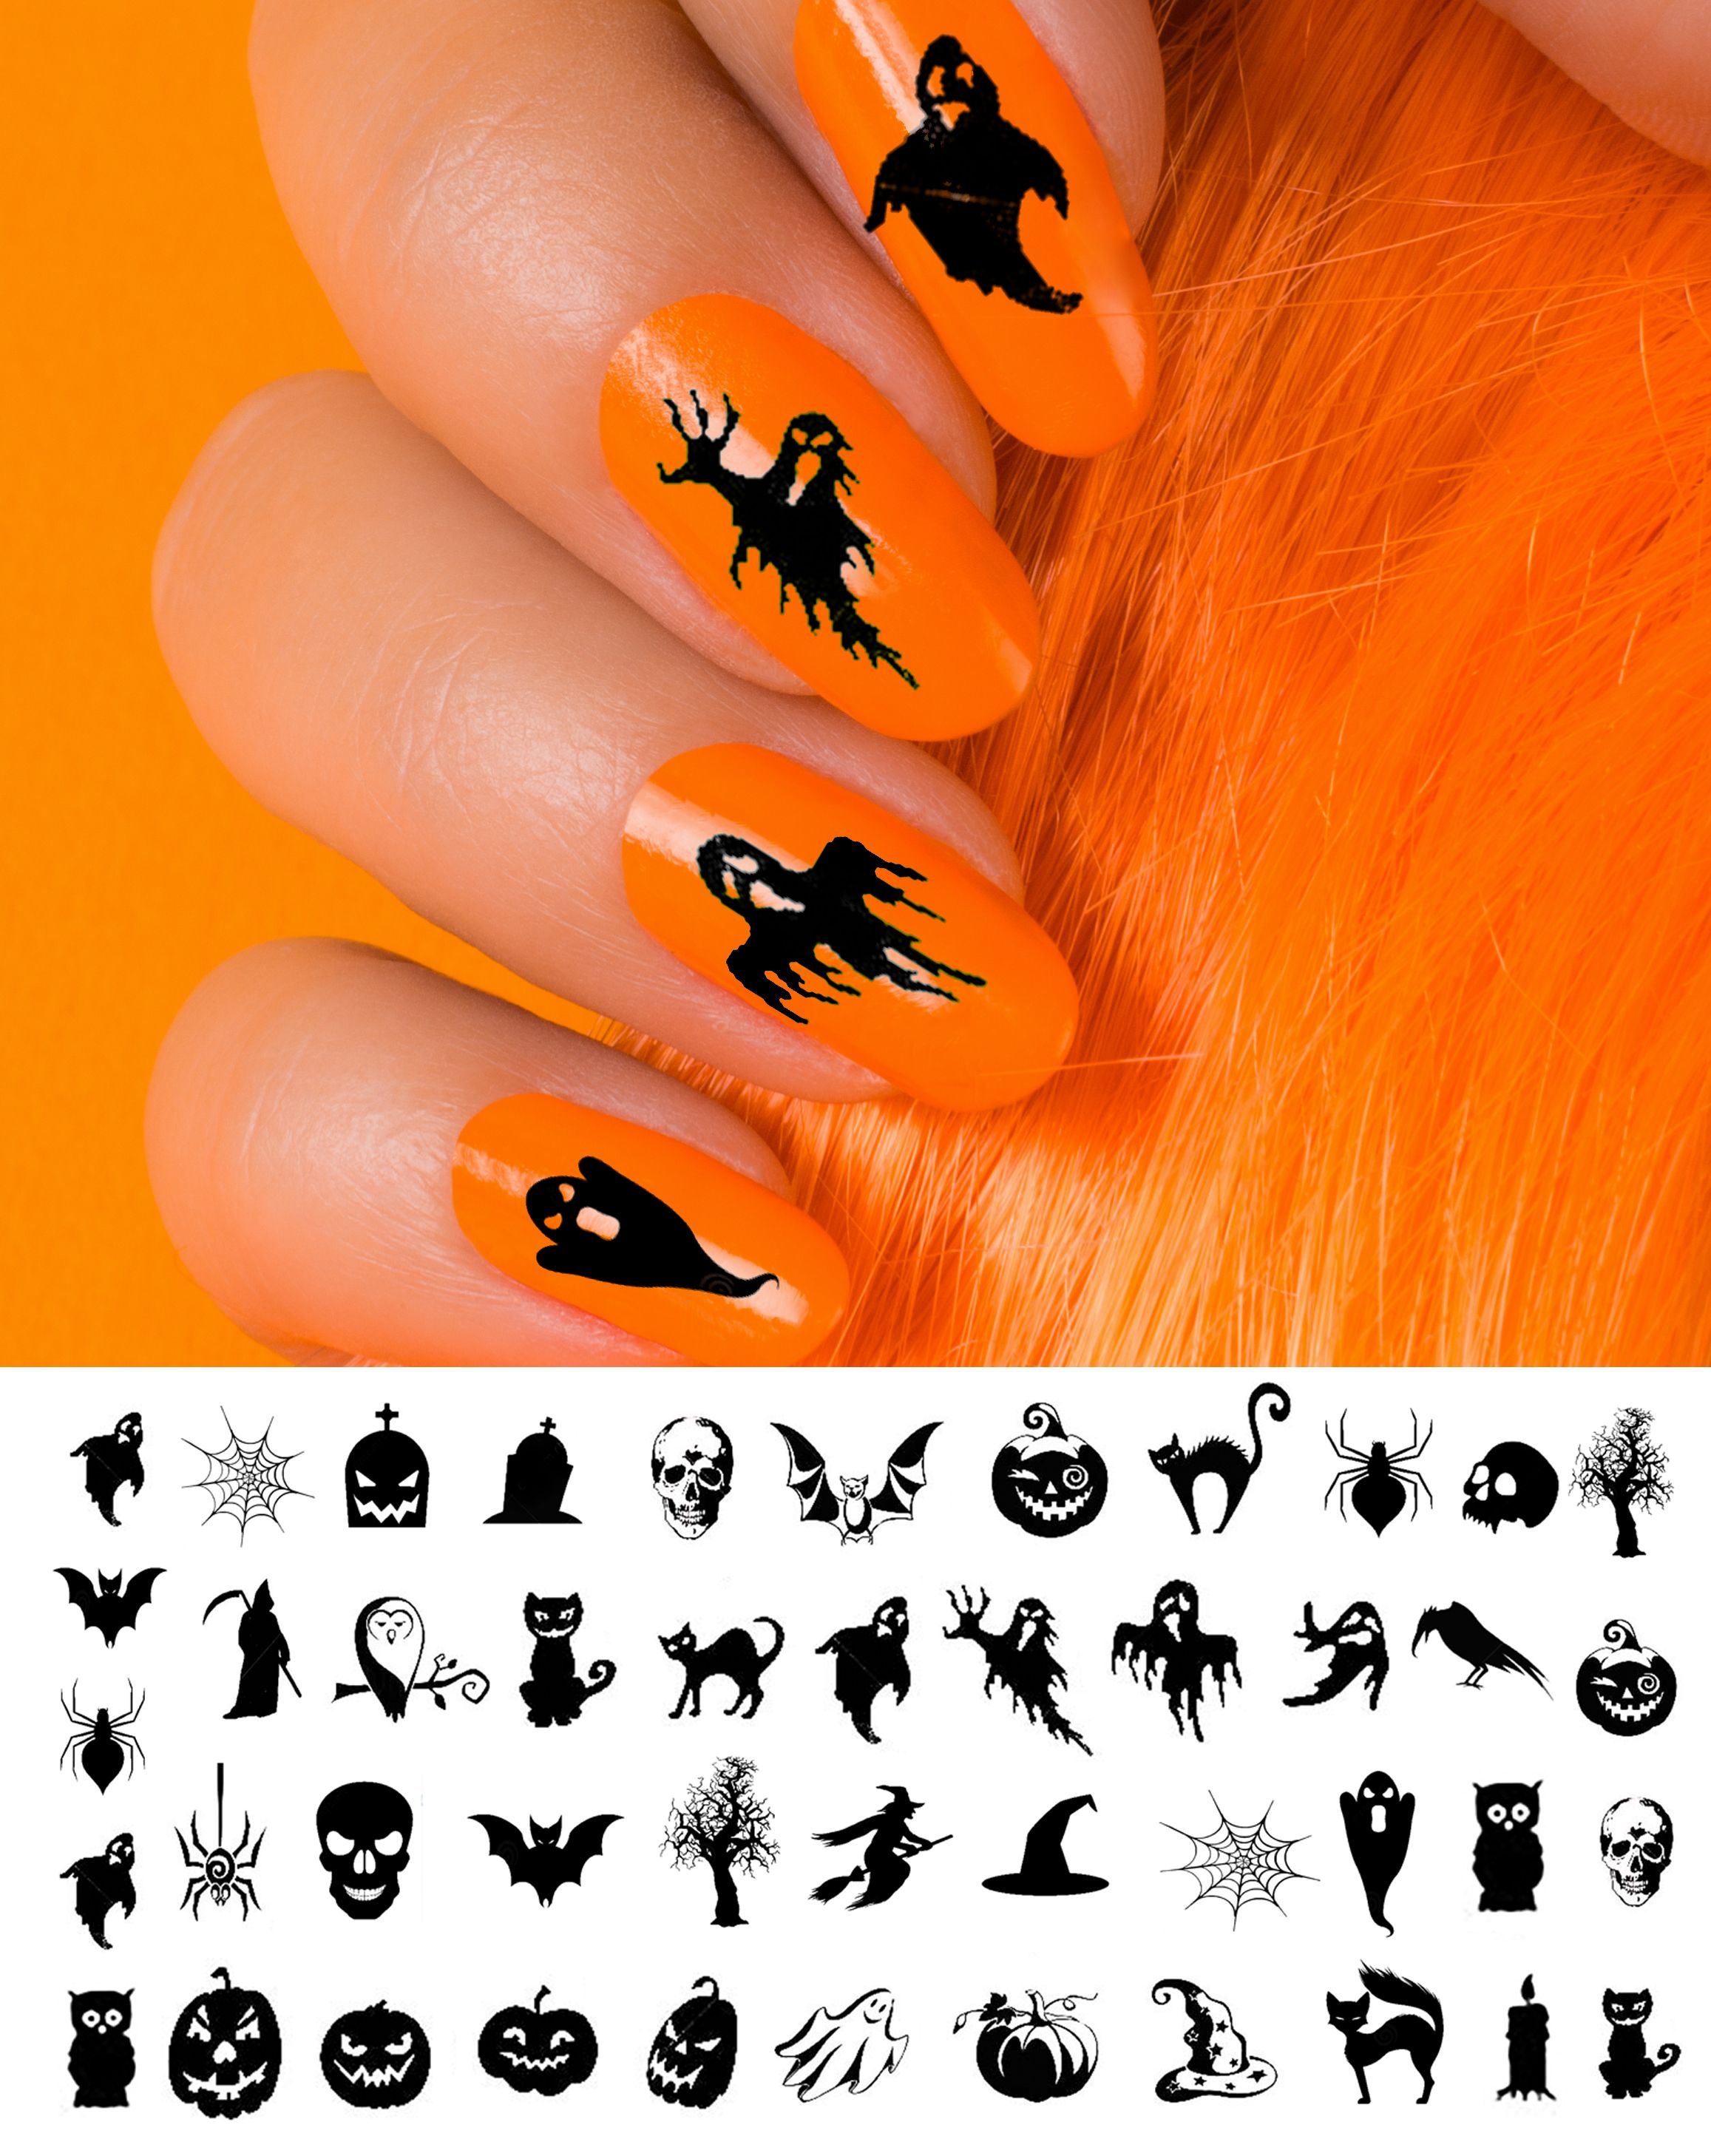 Www Moonsugardecals Com Offers Over 100 Different Salon Quality Nail Art Decal Sets For Any Occasion Includin Sugar Nails Halloween Nail Decals Halloween Nails